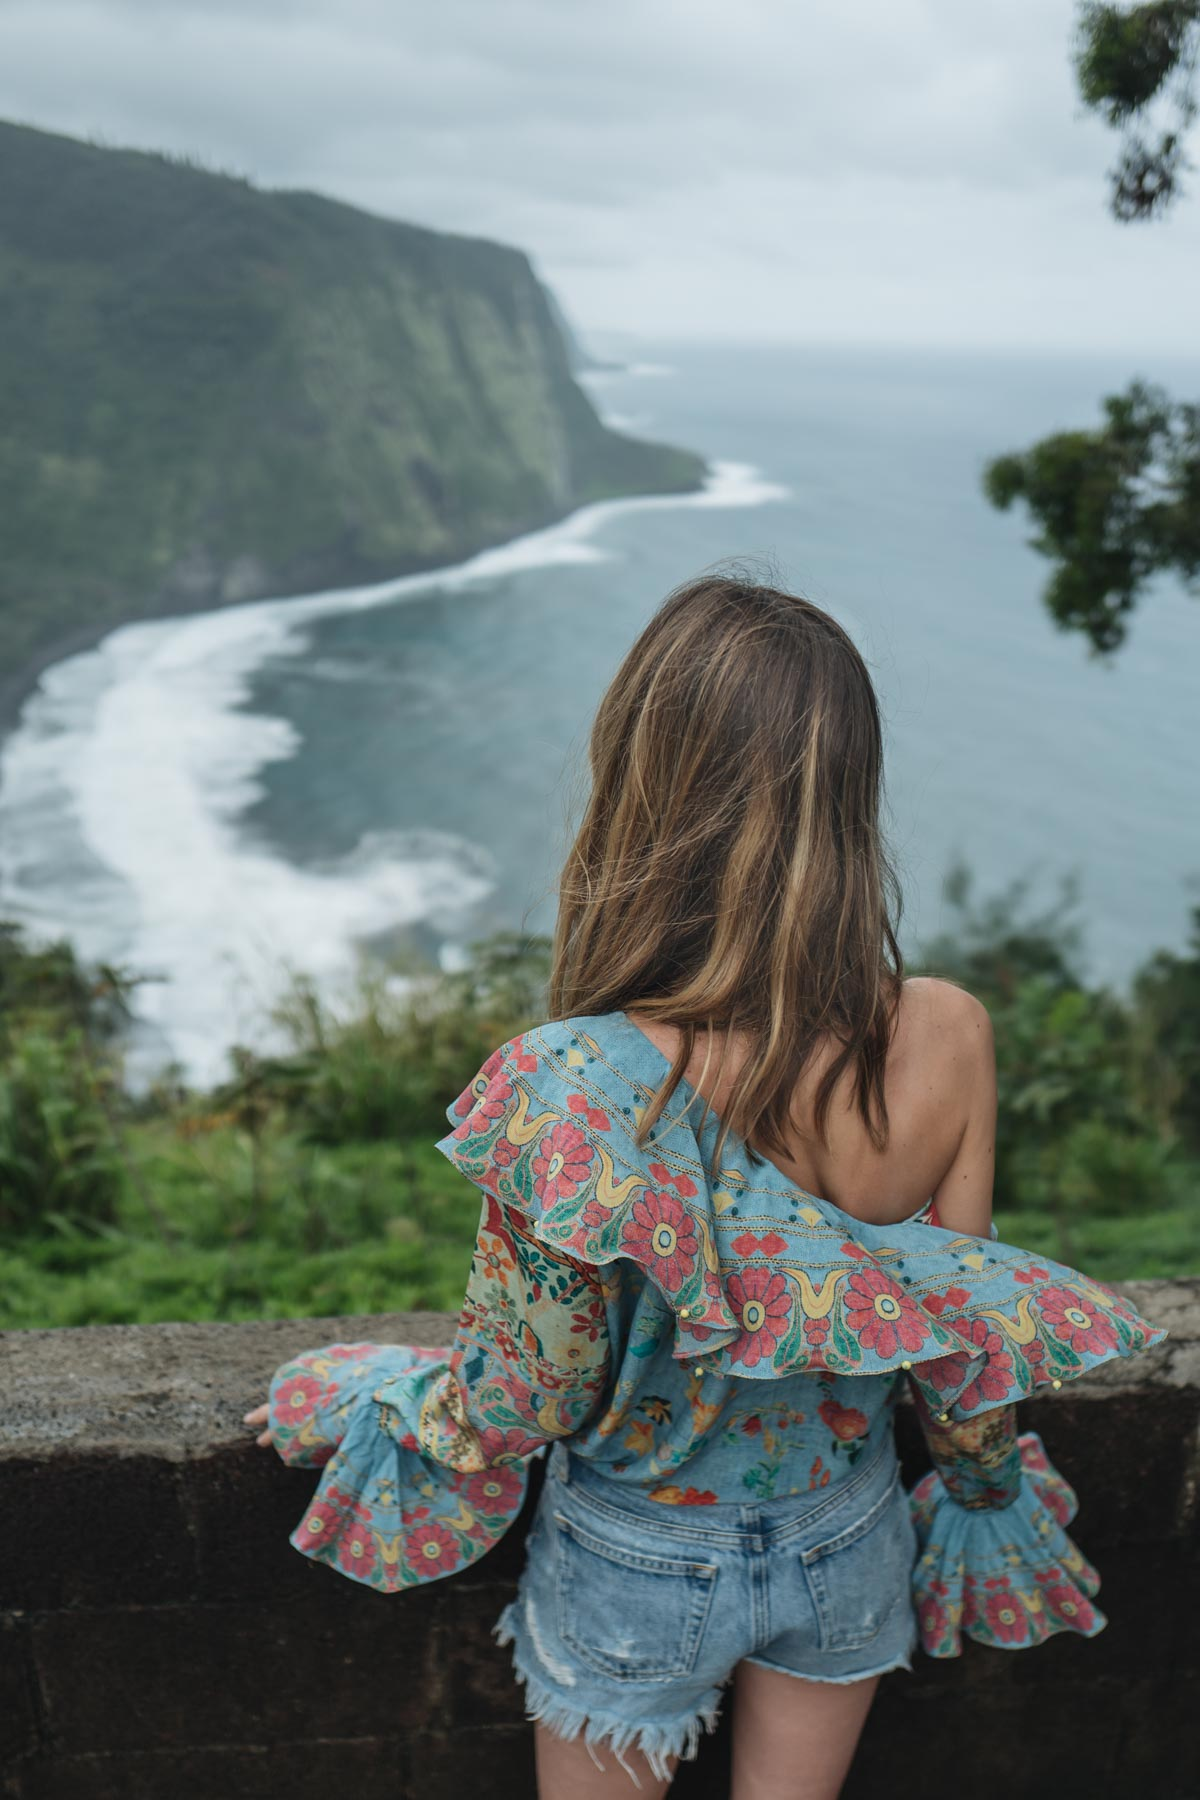 Jess Ann Kirby takes in the sites of Hawaii in a Hemante and Nandita Blouse